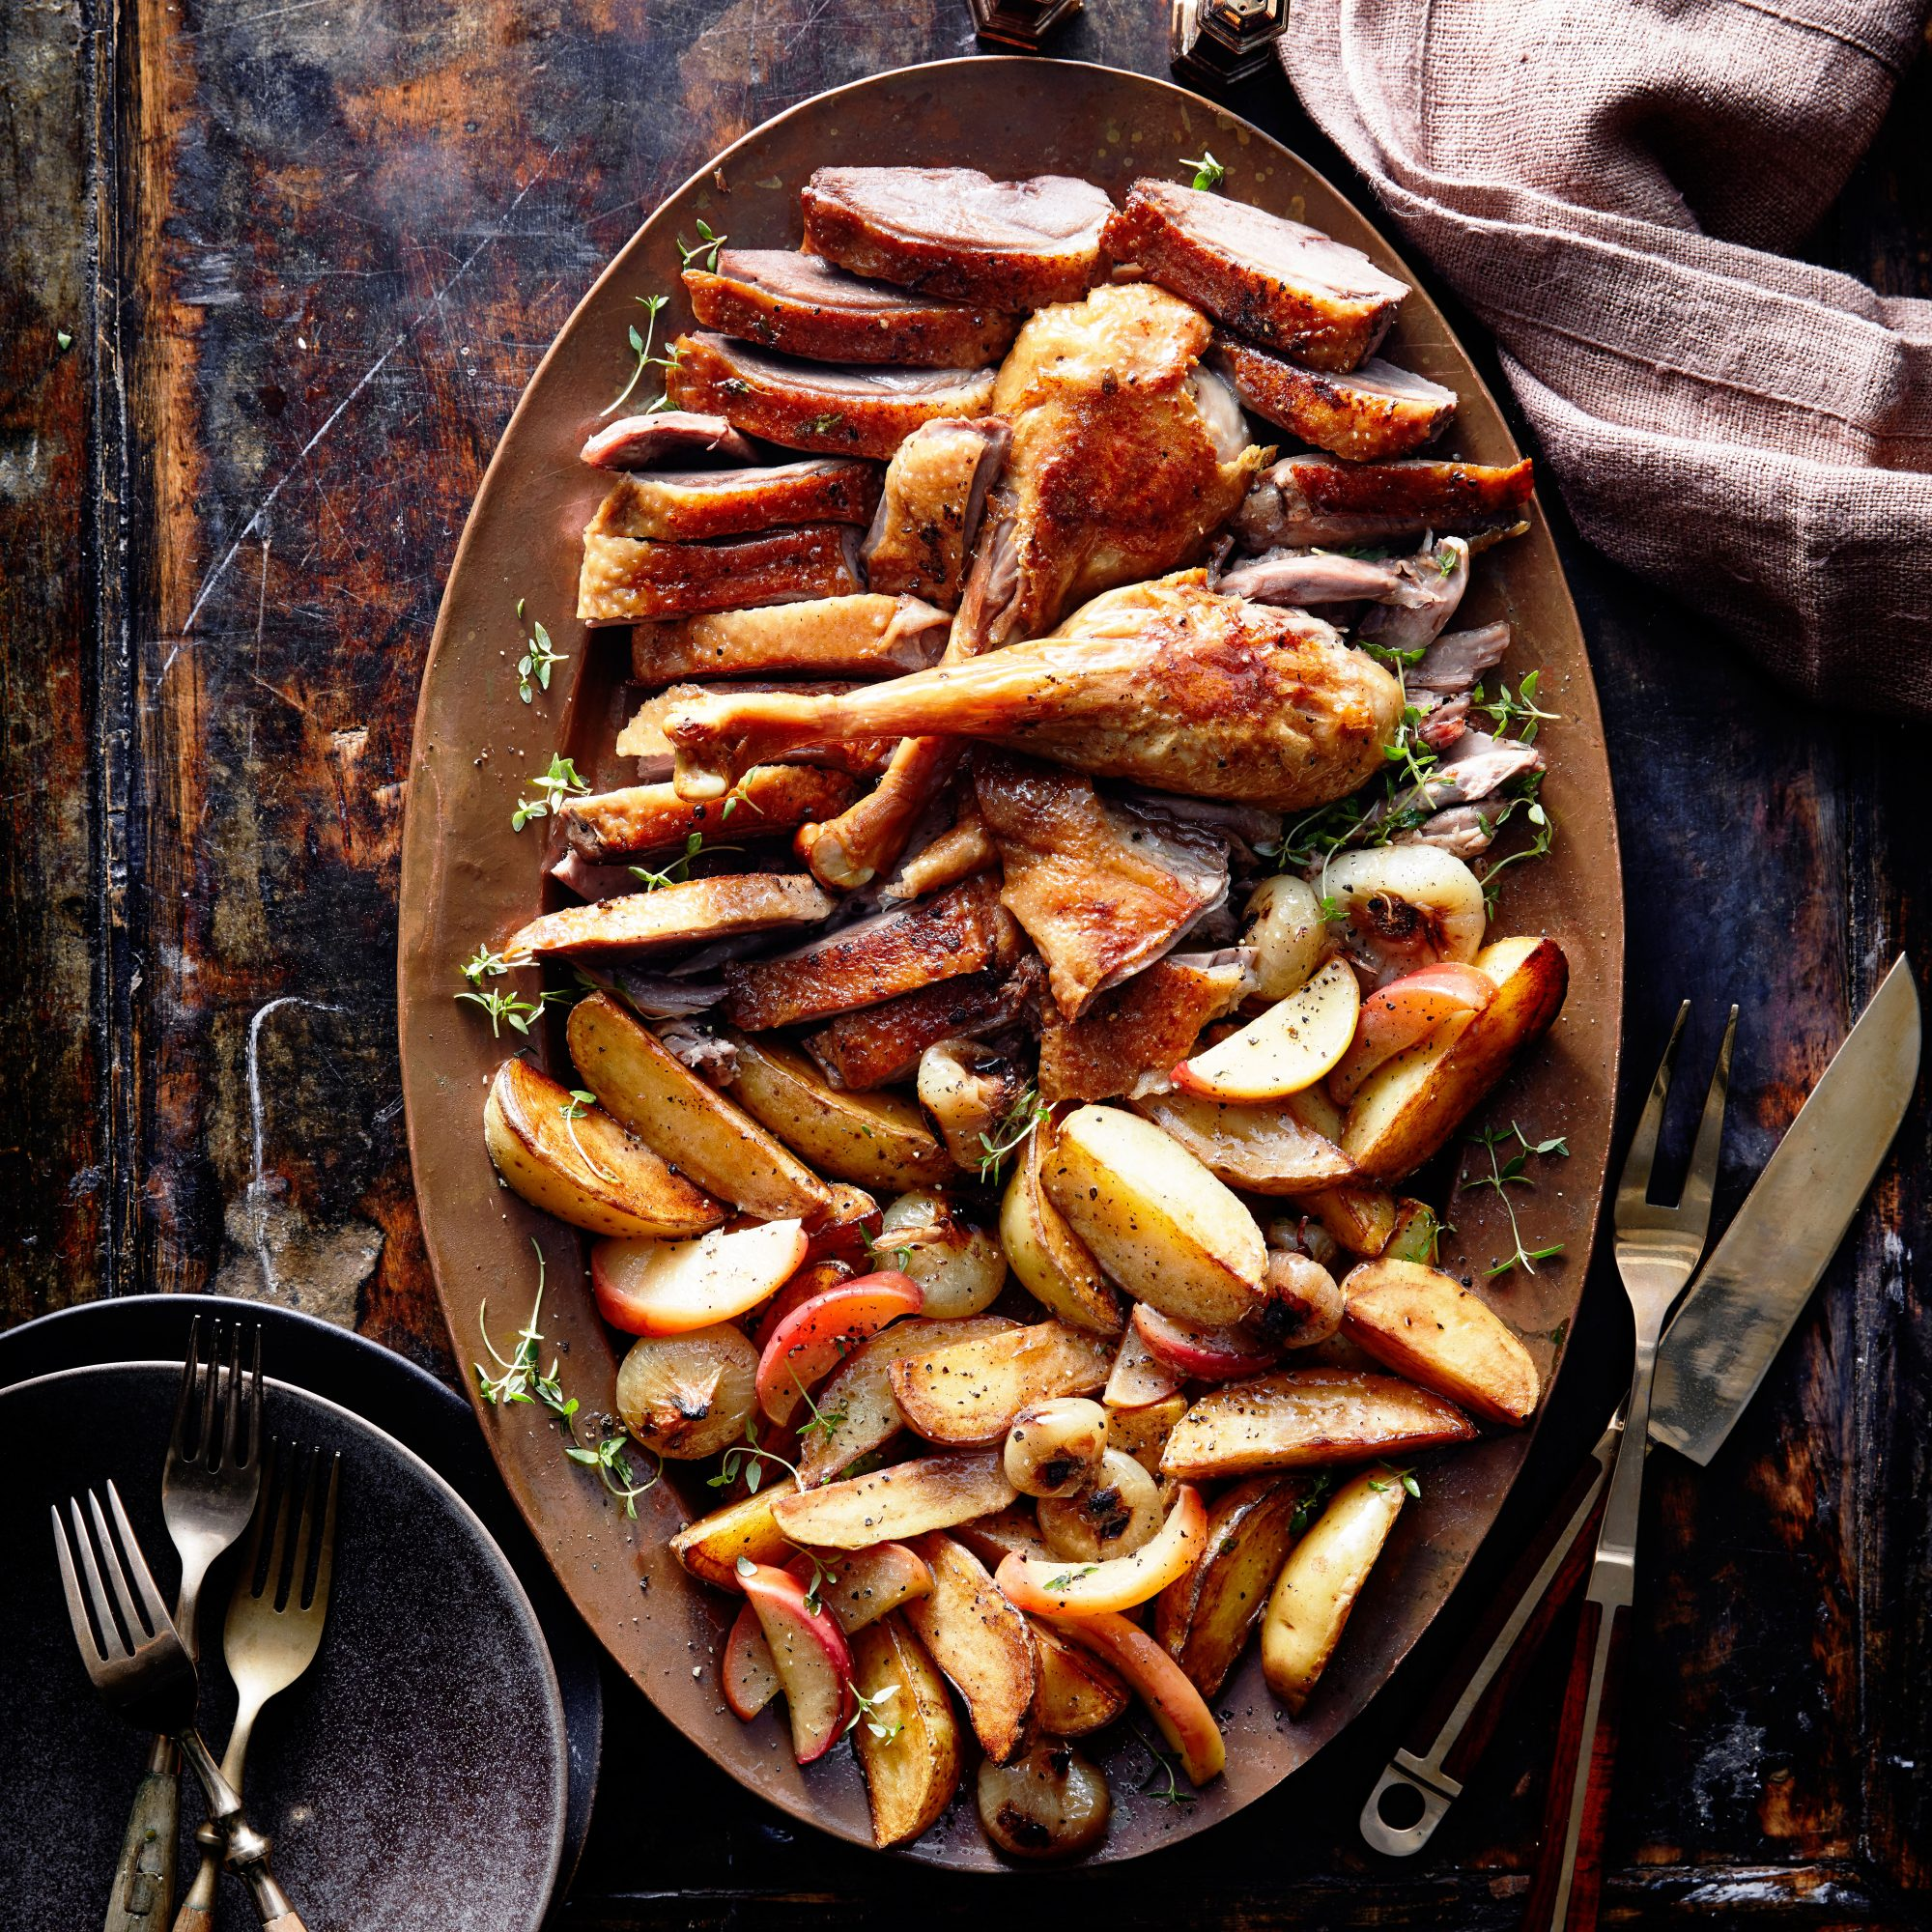 Roast Goose with Potatoes, Onions, and Apple